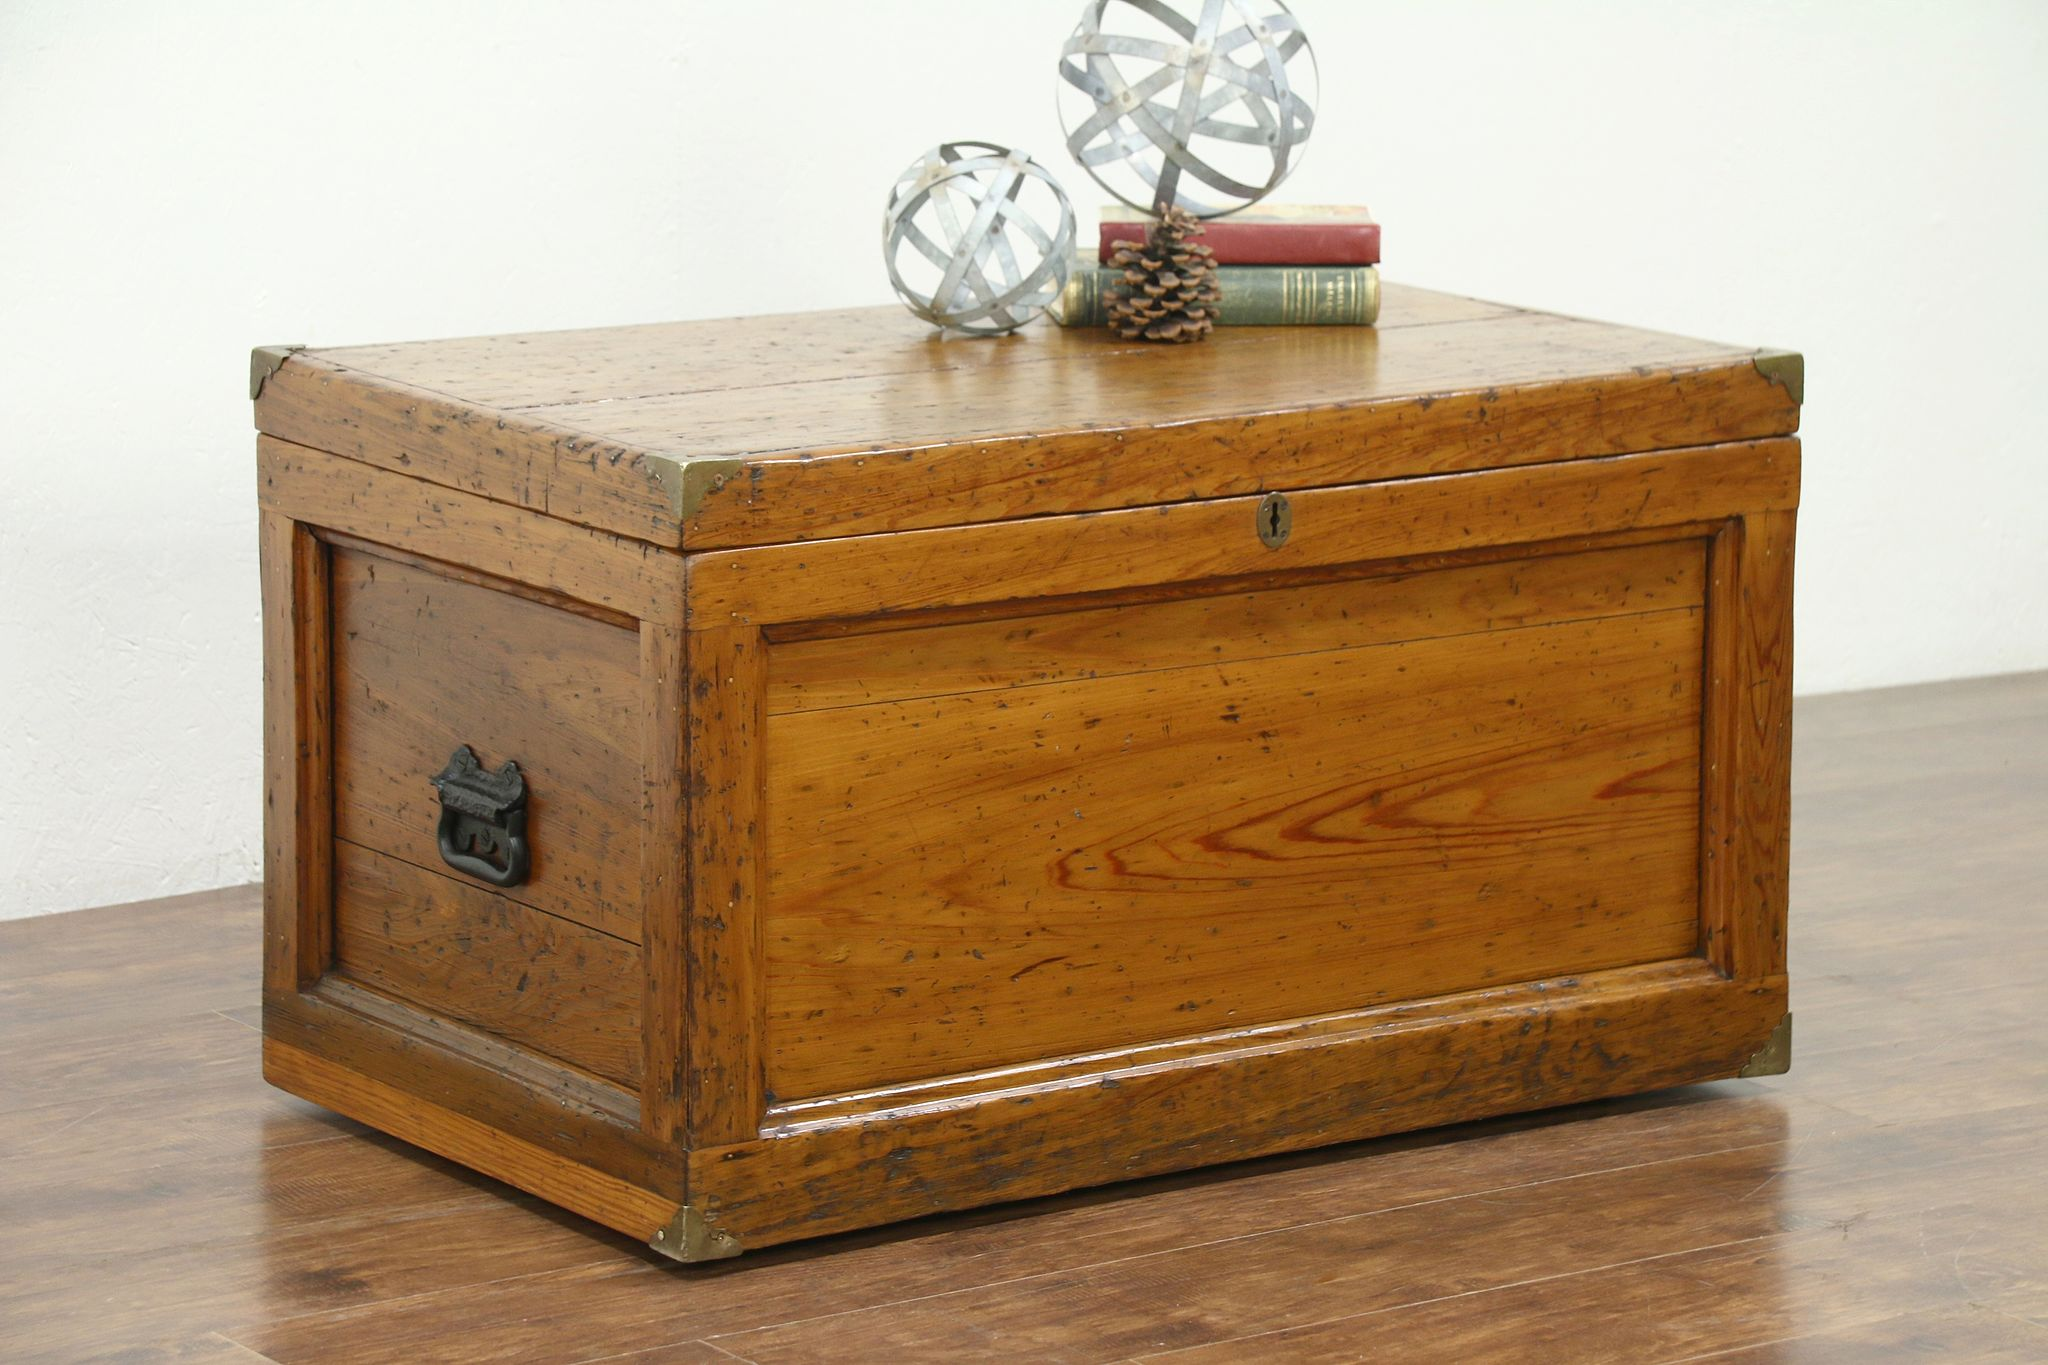 design cole tables trunk wonderful designs in table coffee looks papers image of